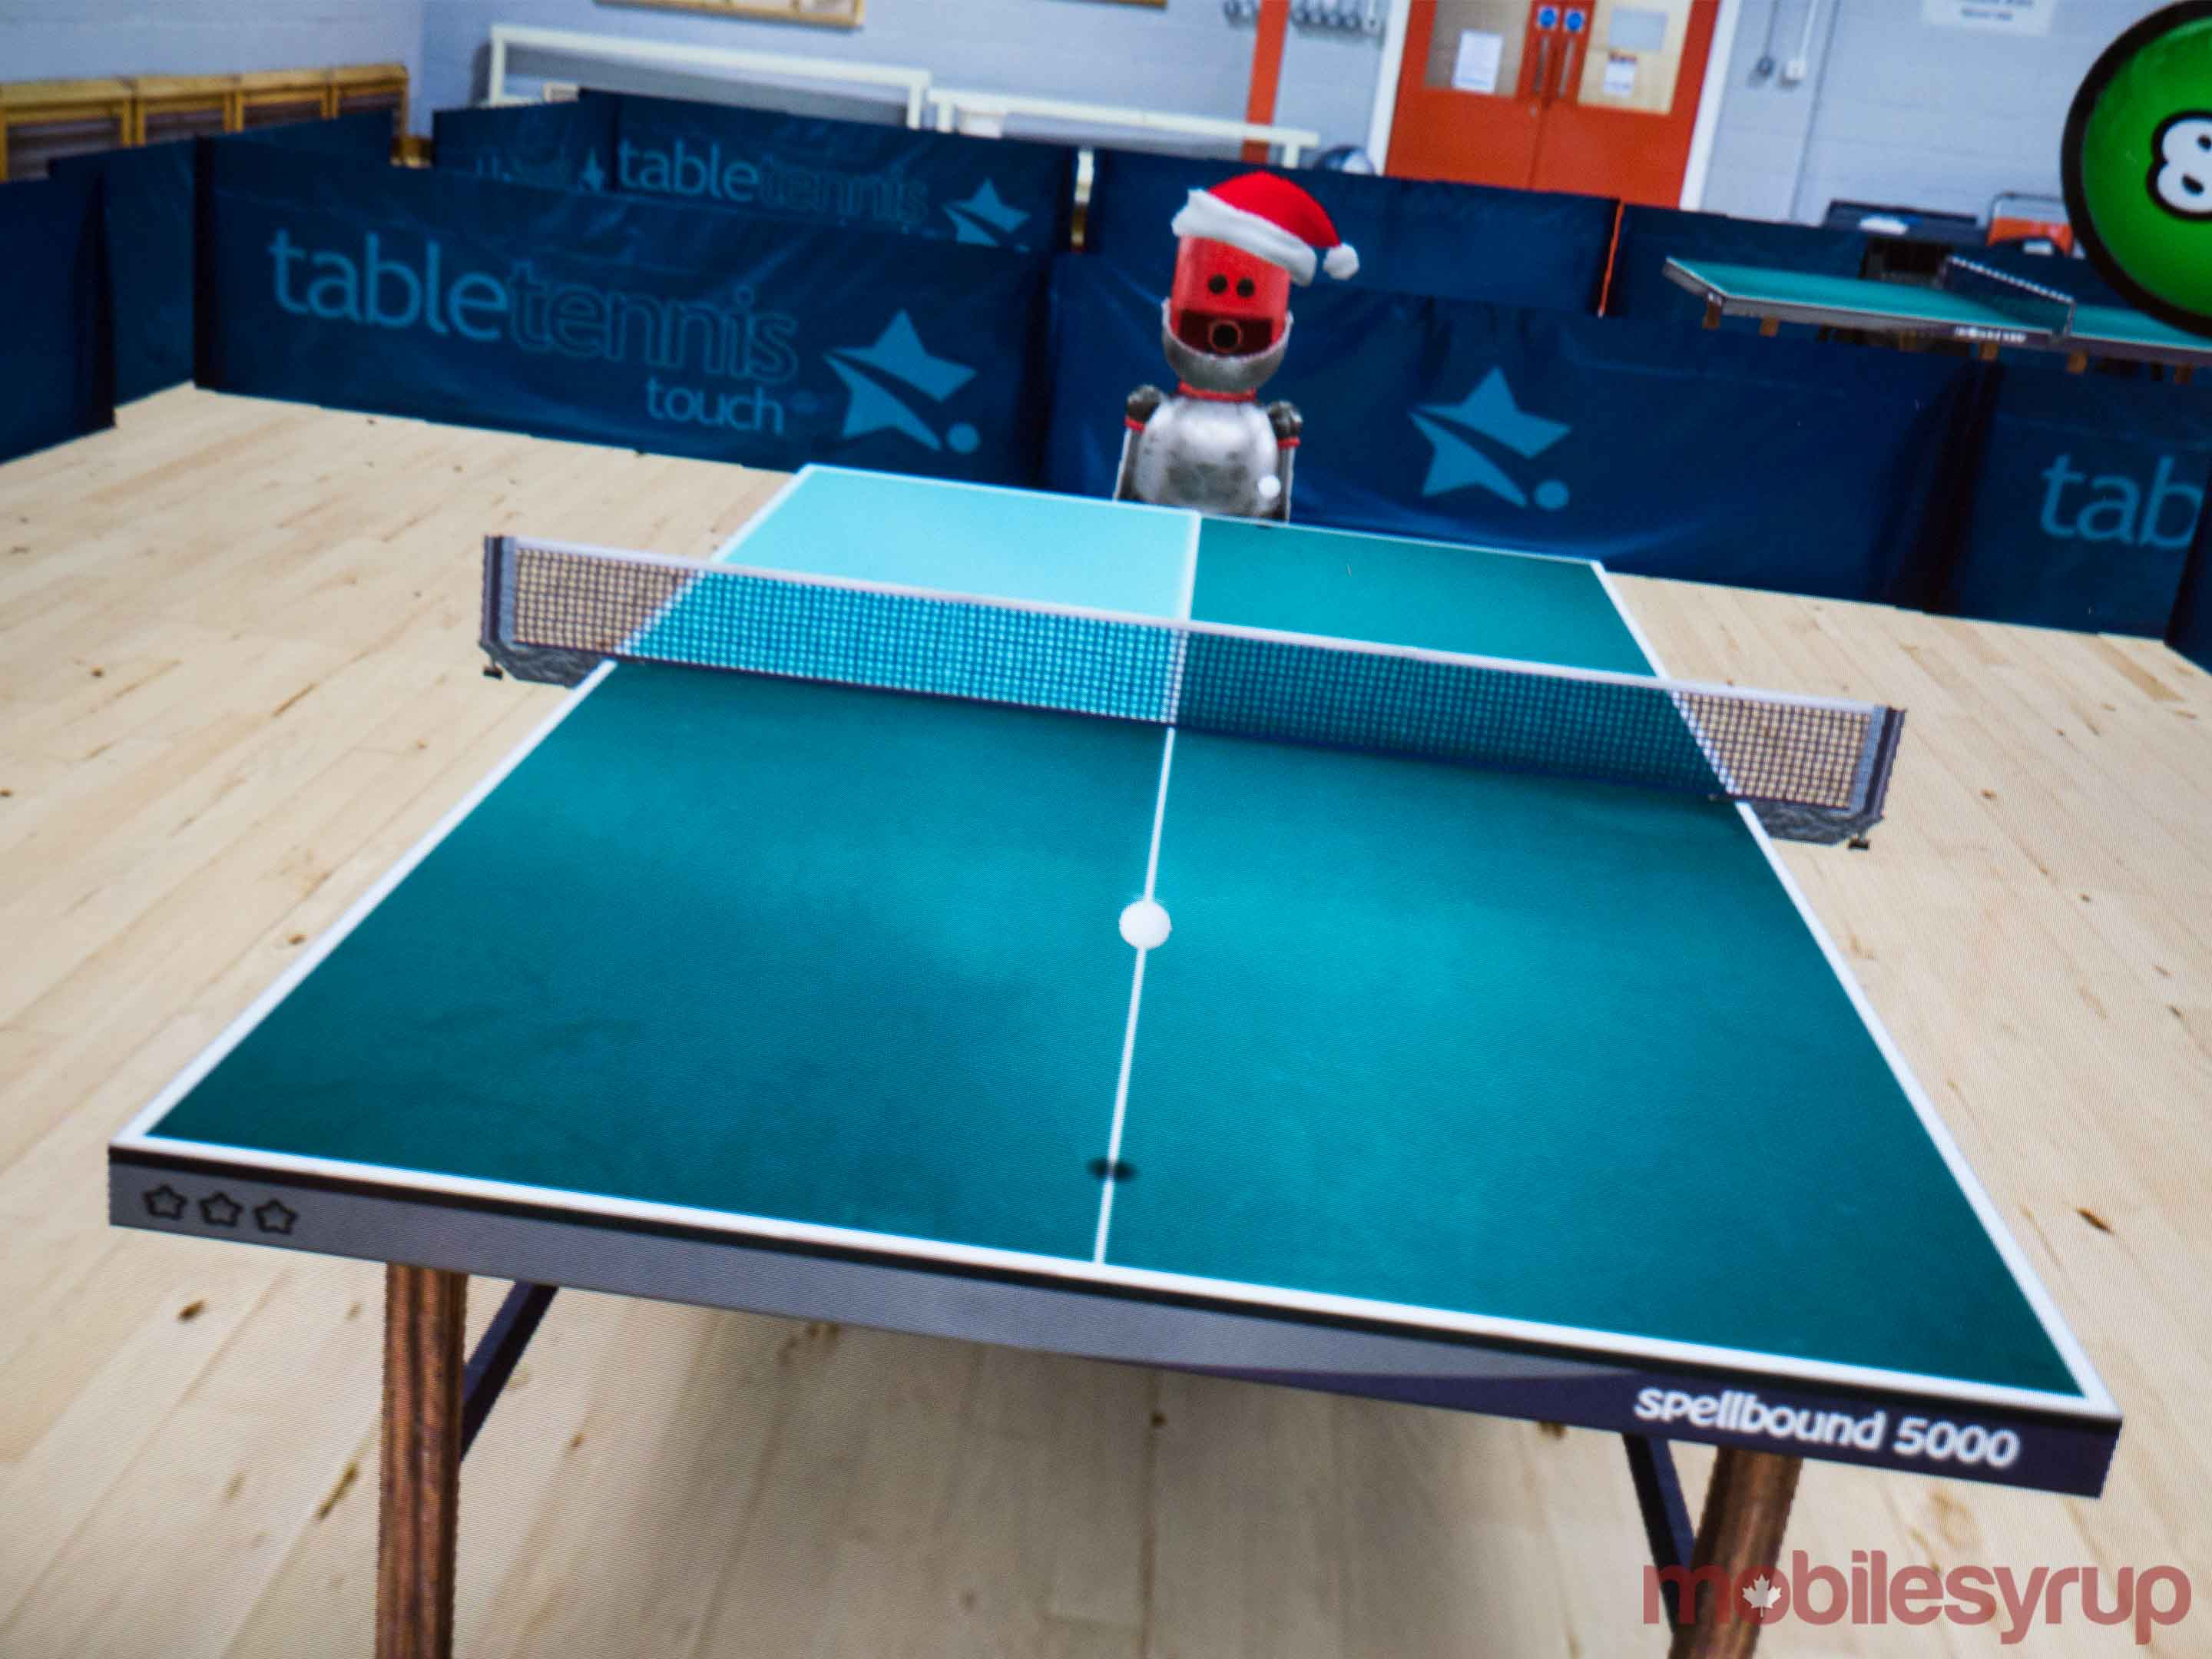 Bring in the New Year with Table Tennis [Game of the Week] | MobileSyrup